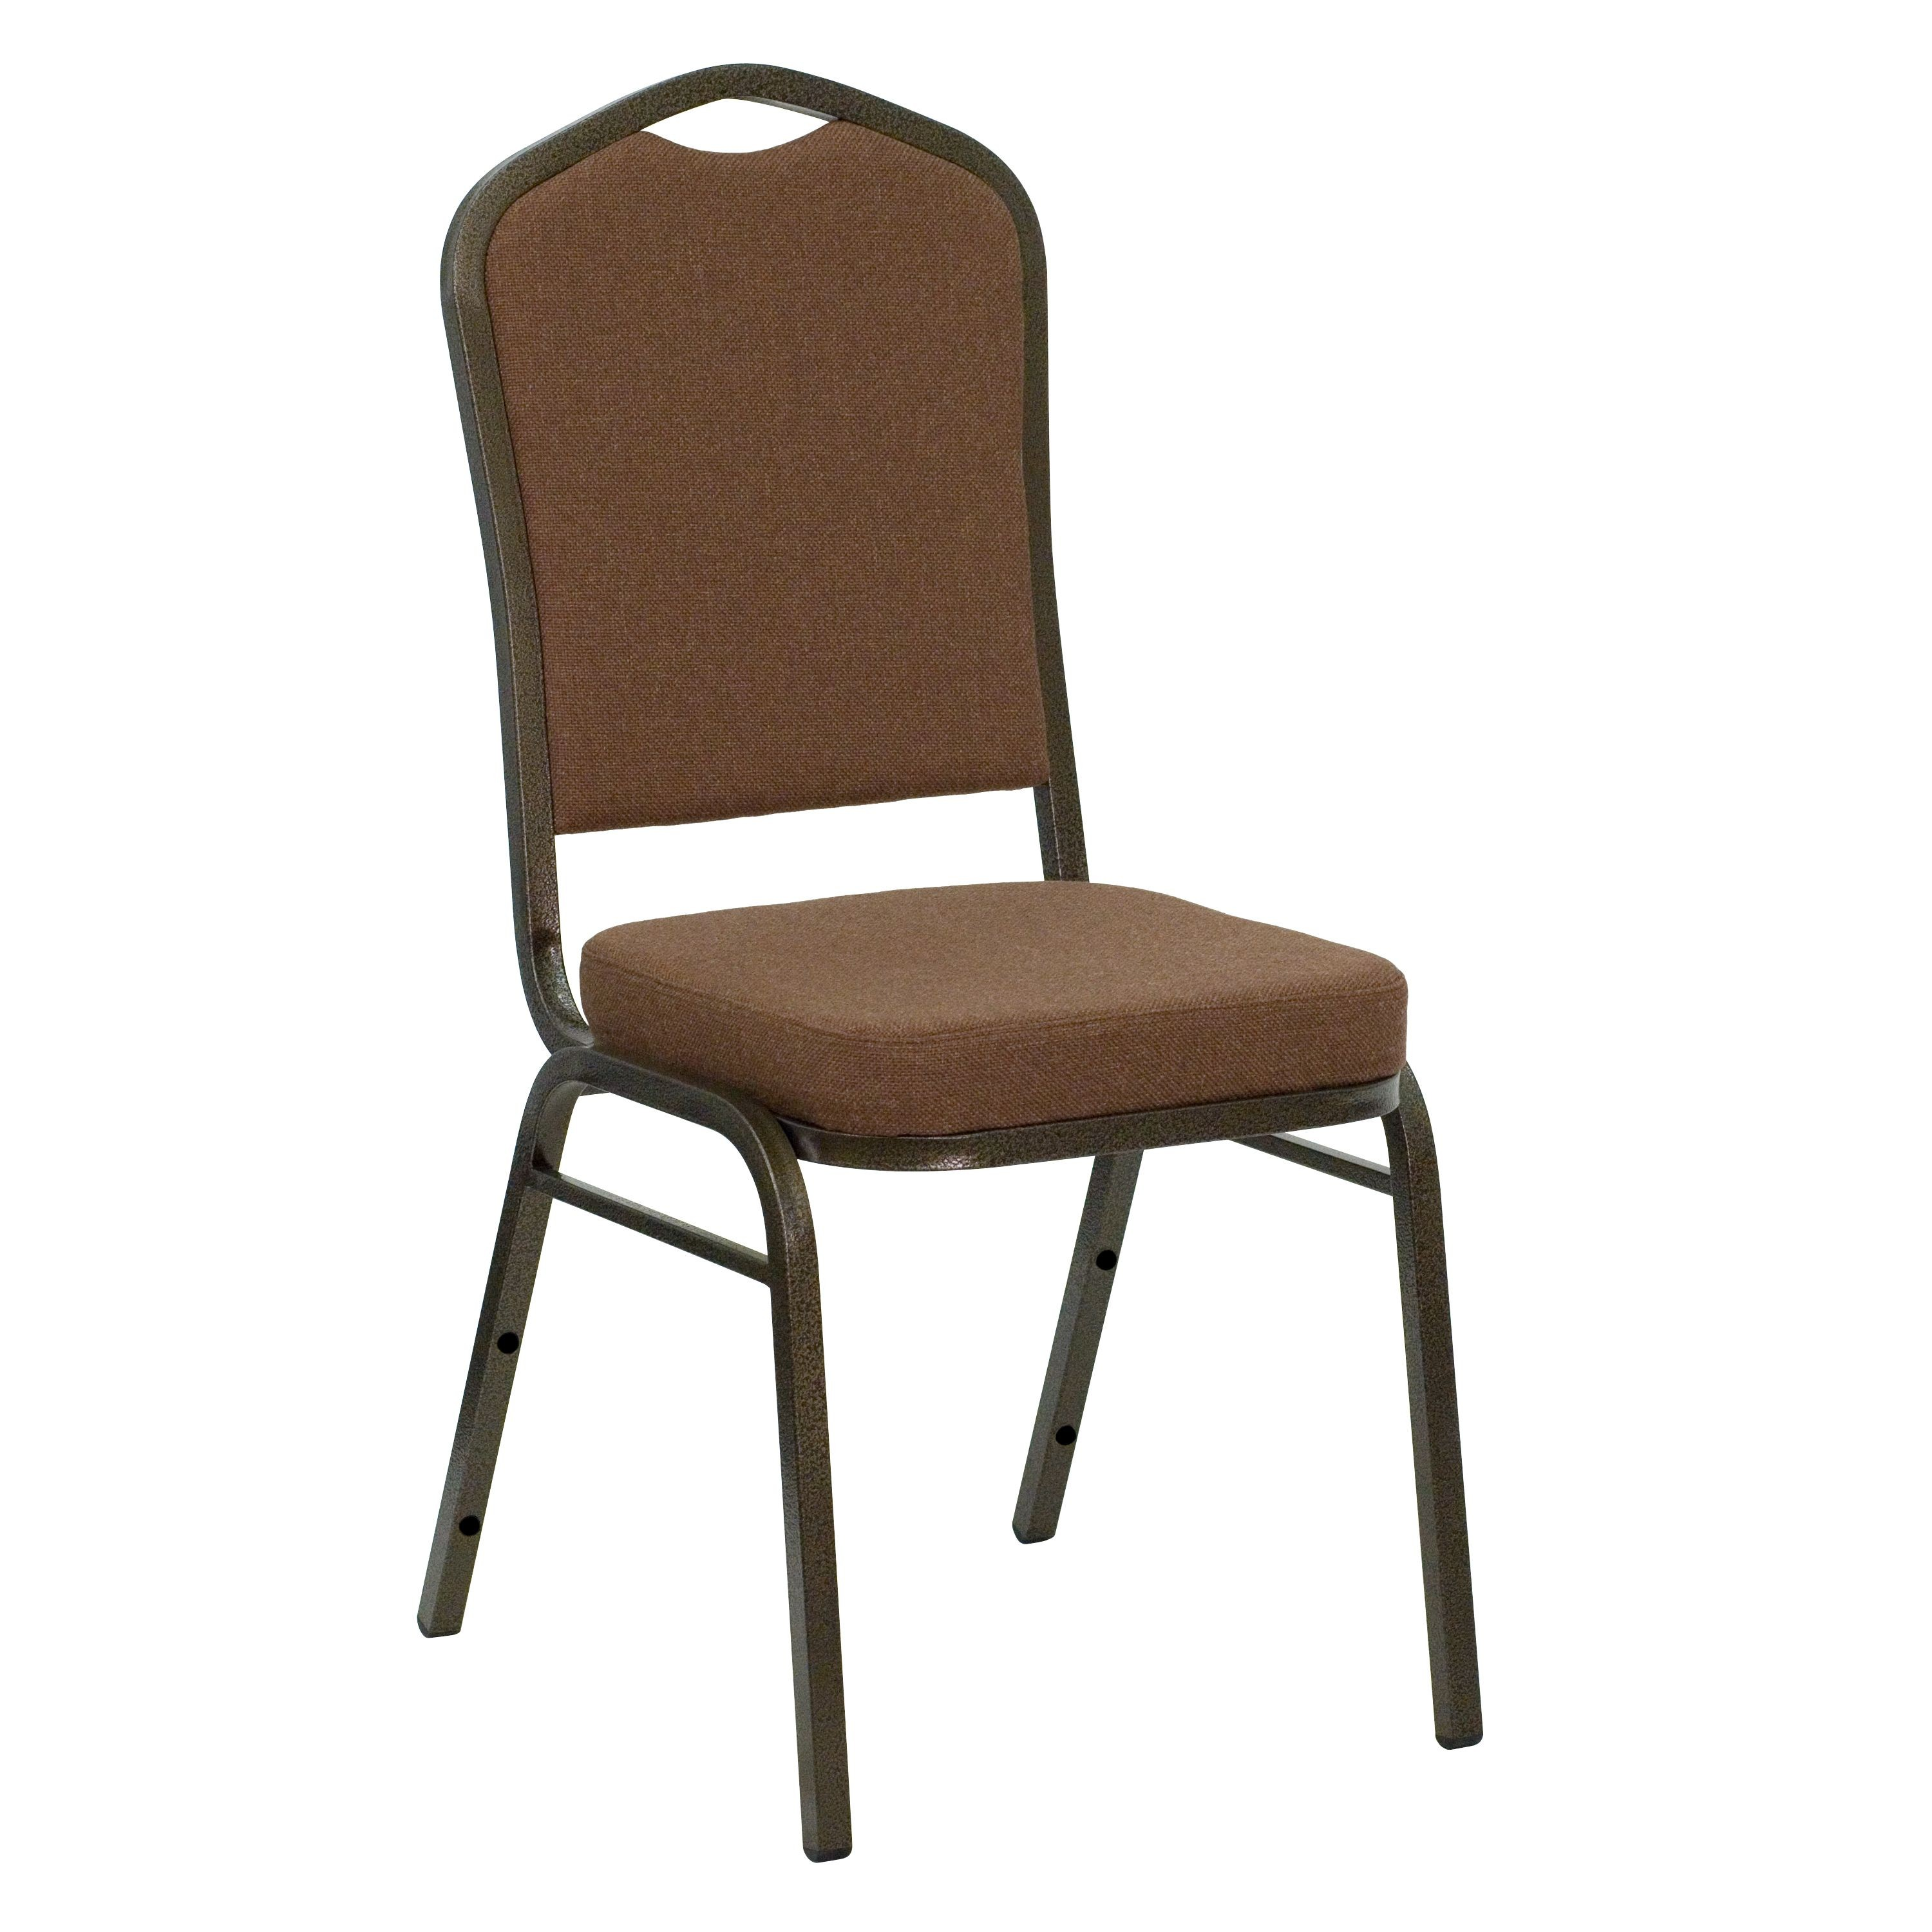 Flash Furniture NG-C01-COFFEE-GV-GG Crown Back Stacking Banquet Chair with Coffee Fabric/Gold Vein Frame